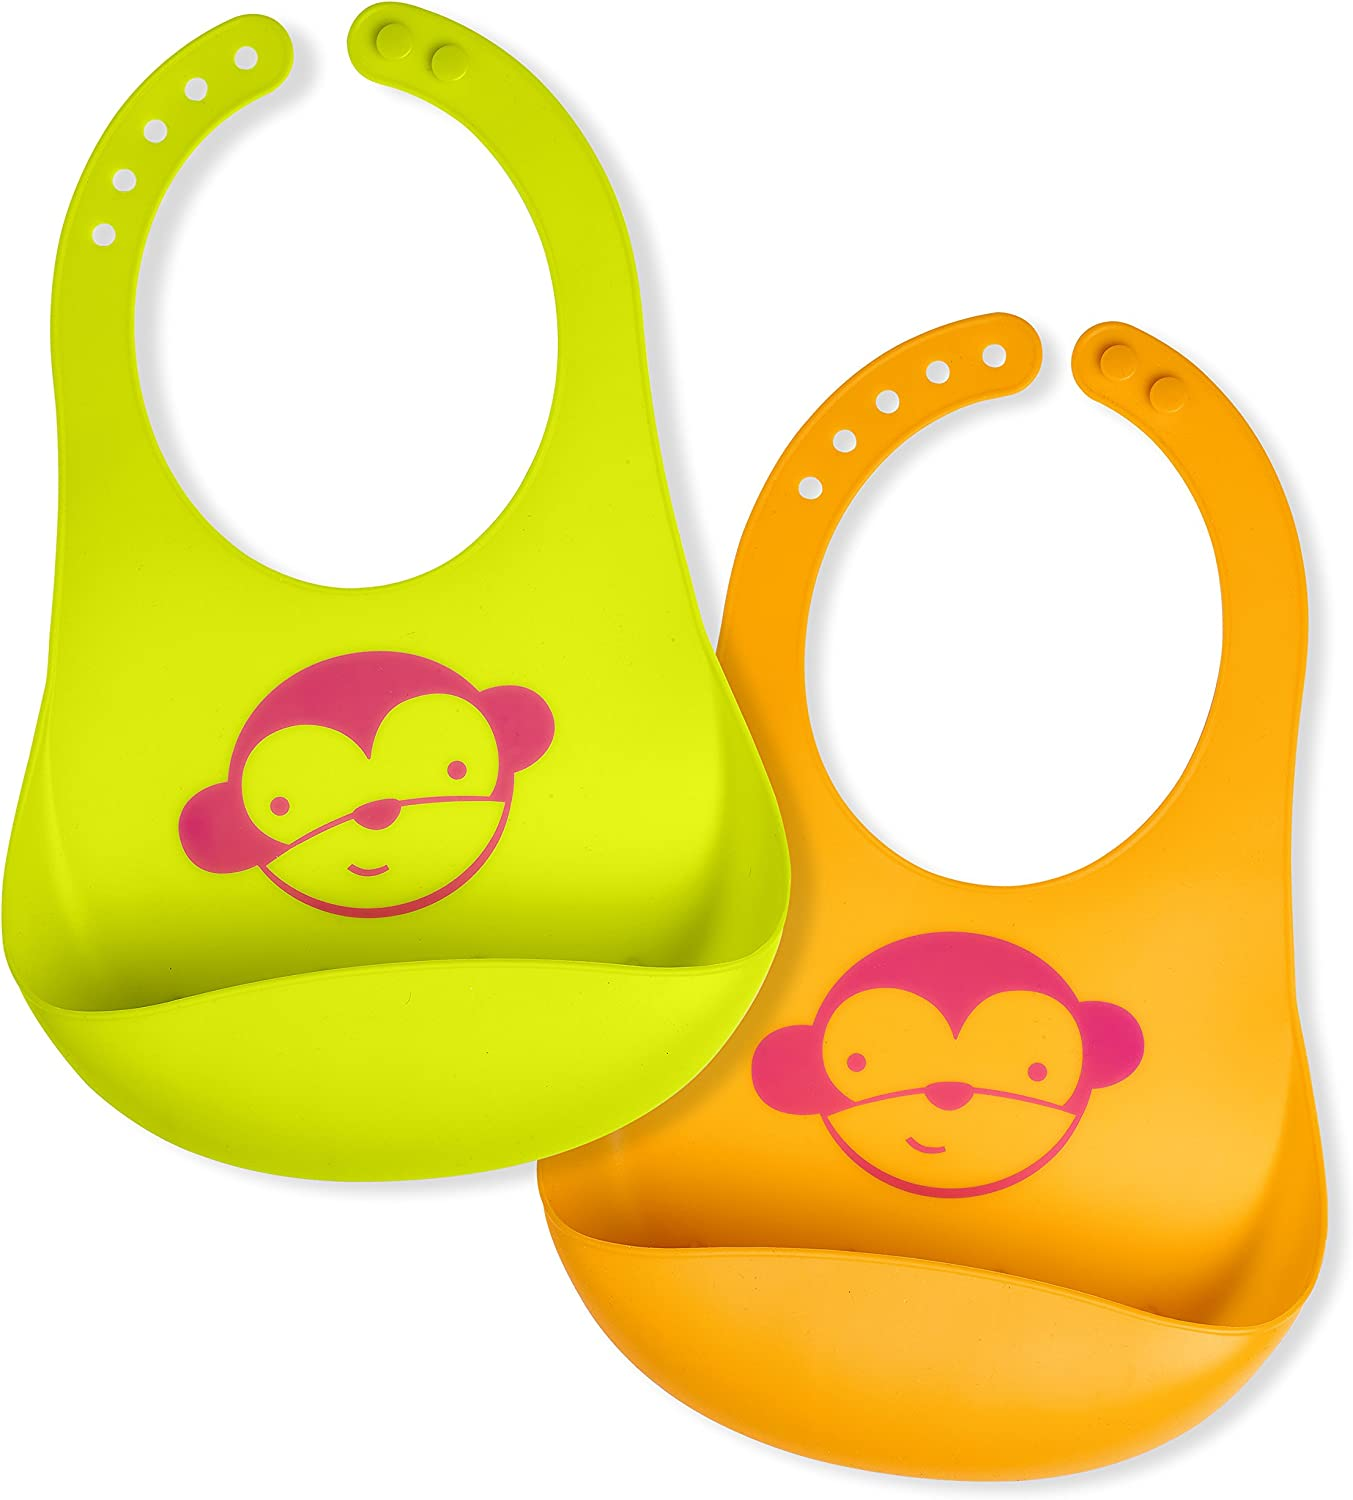 Pink//Purple Set of 2 Colours Comfortable Soft Baby Bibs Keep Stains Off Waterproof Silicone Bib Easily Wipes Clean Spend Less Time Cleaning after Meals with Babies or Toddlers